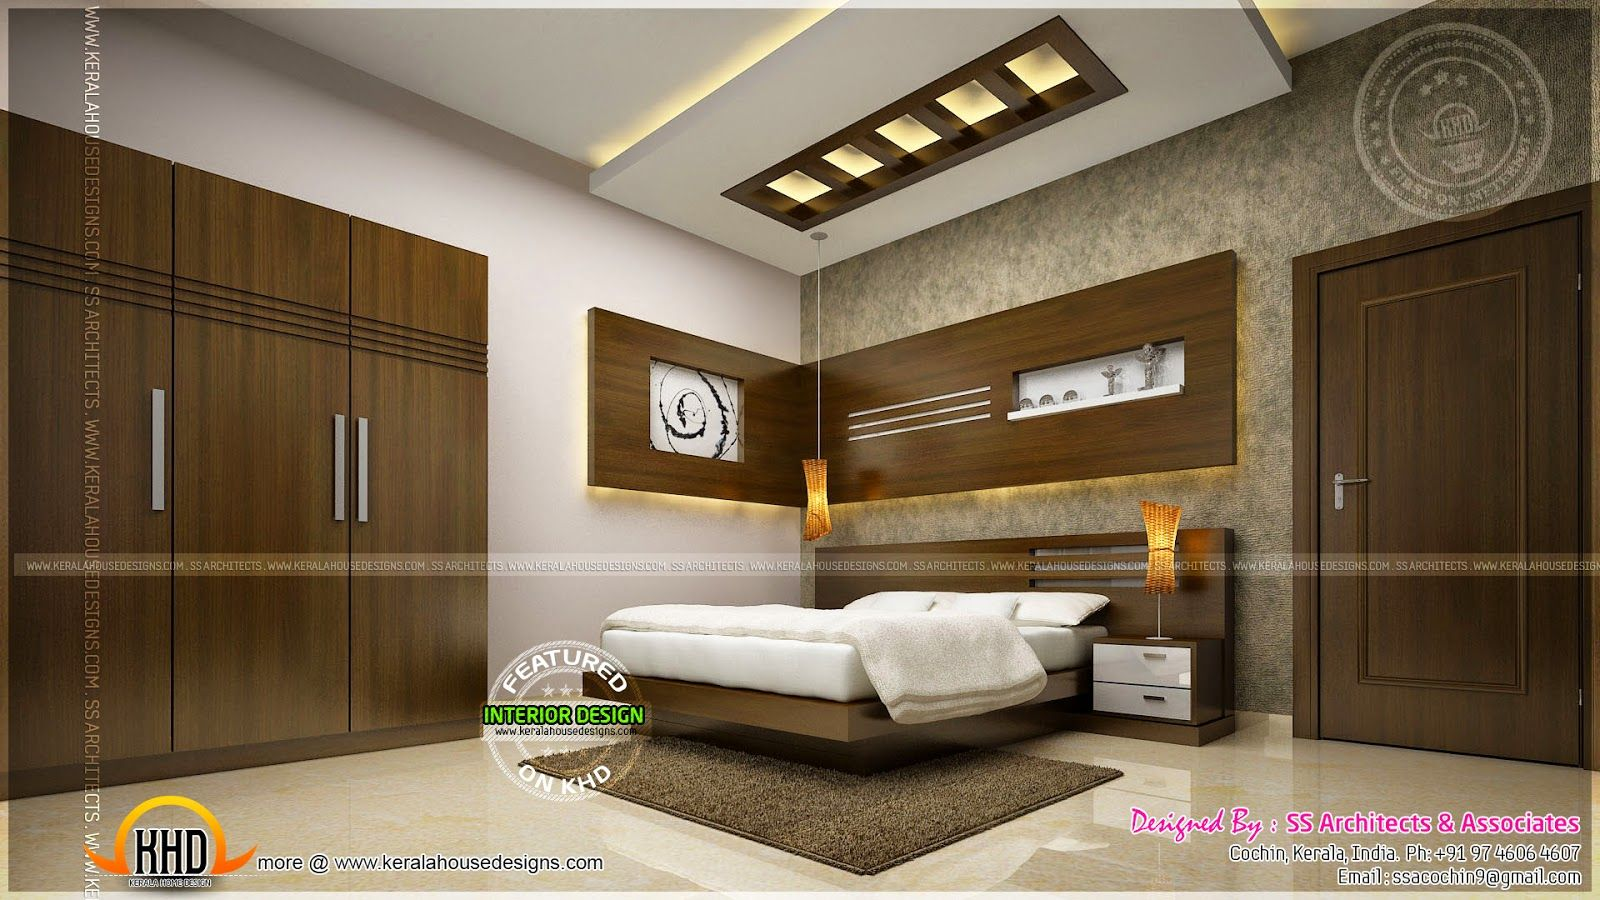 awesome master bedroom interior kerala home design and floor plans  beautiful interiors. awesome master bedroom interior kerala home design and floor plans